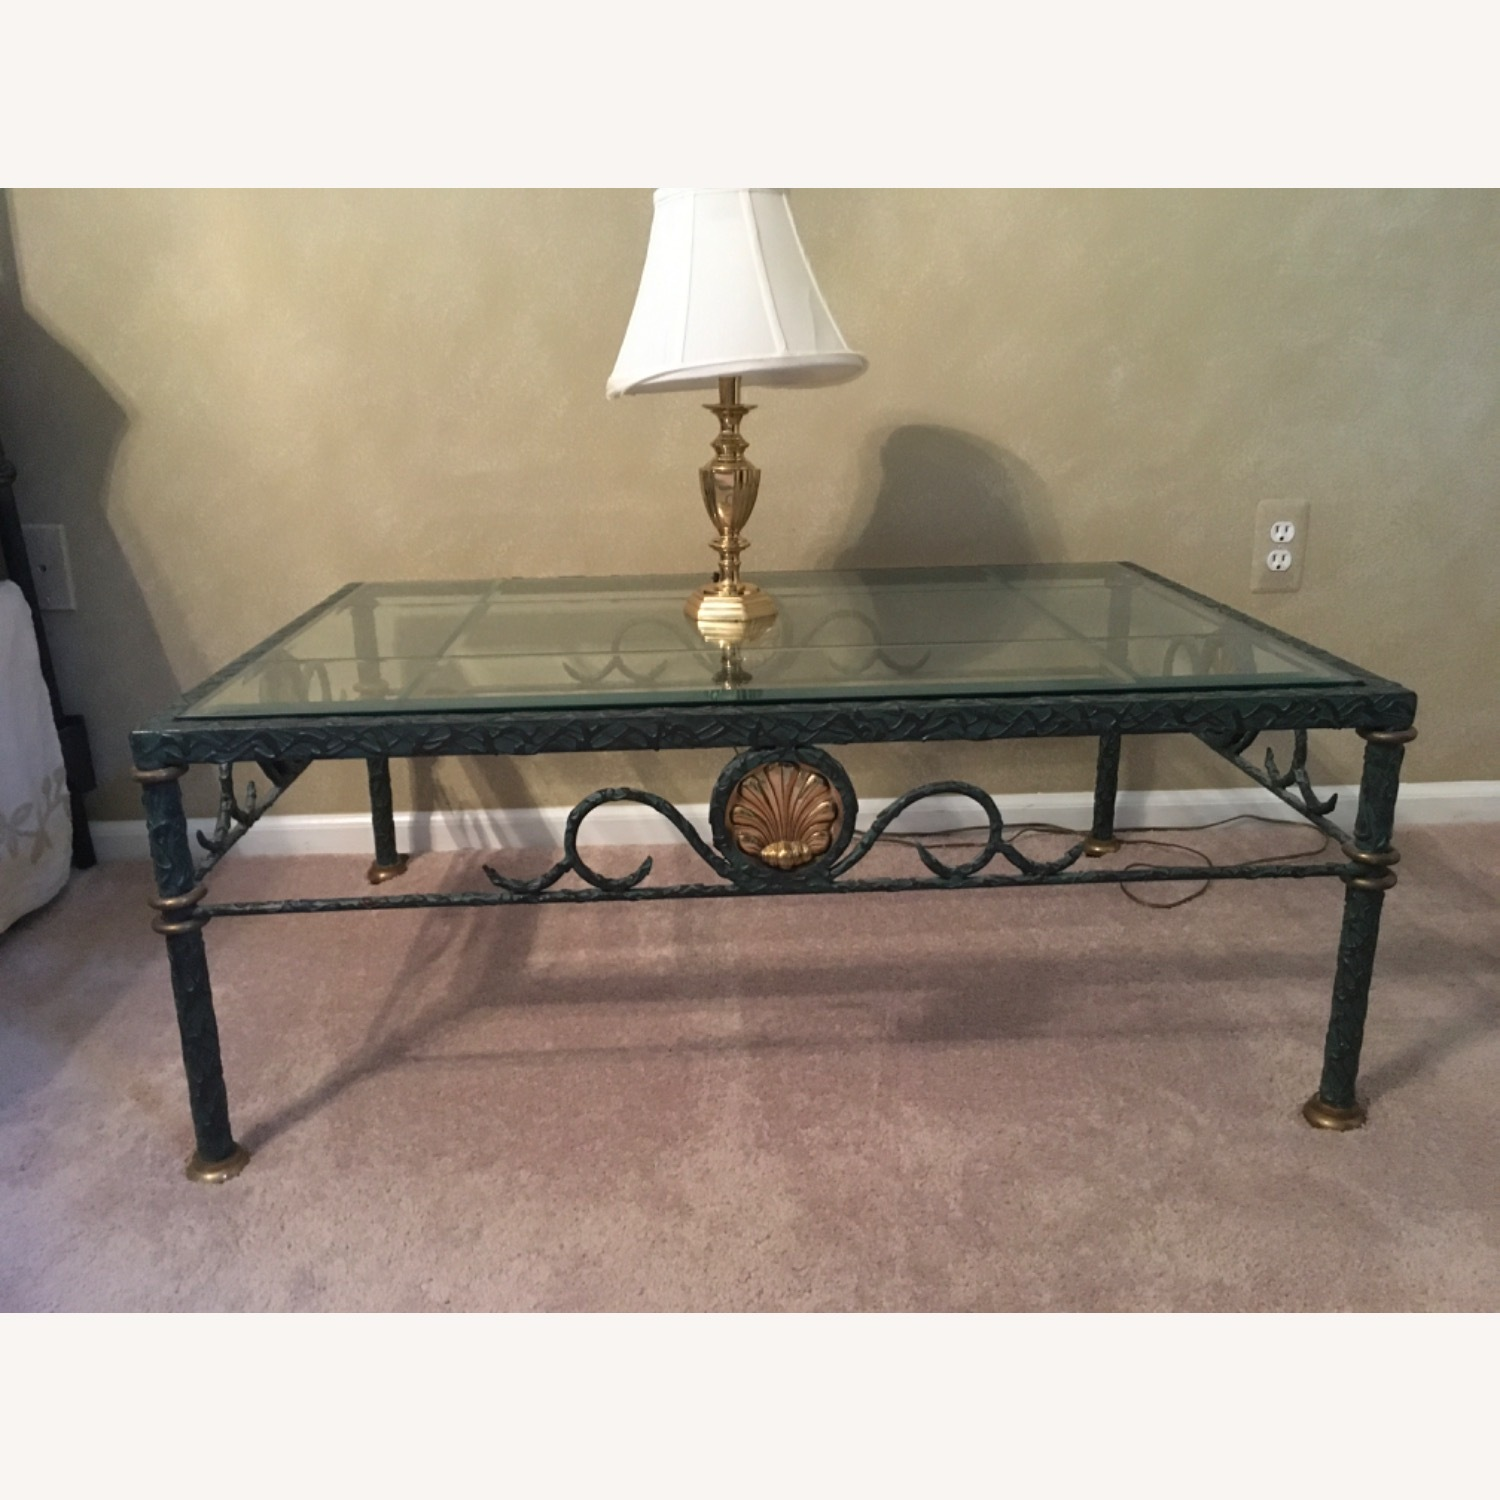 Beveled Glass and Iron Coffee Table - image-2